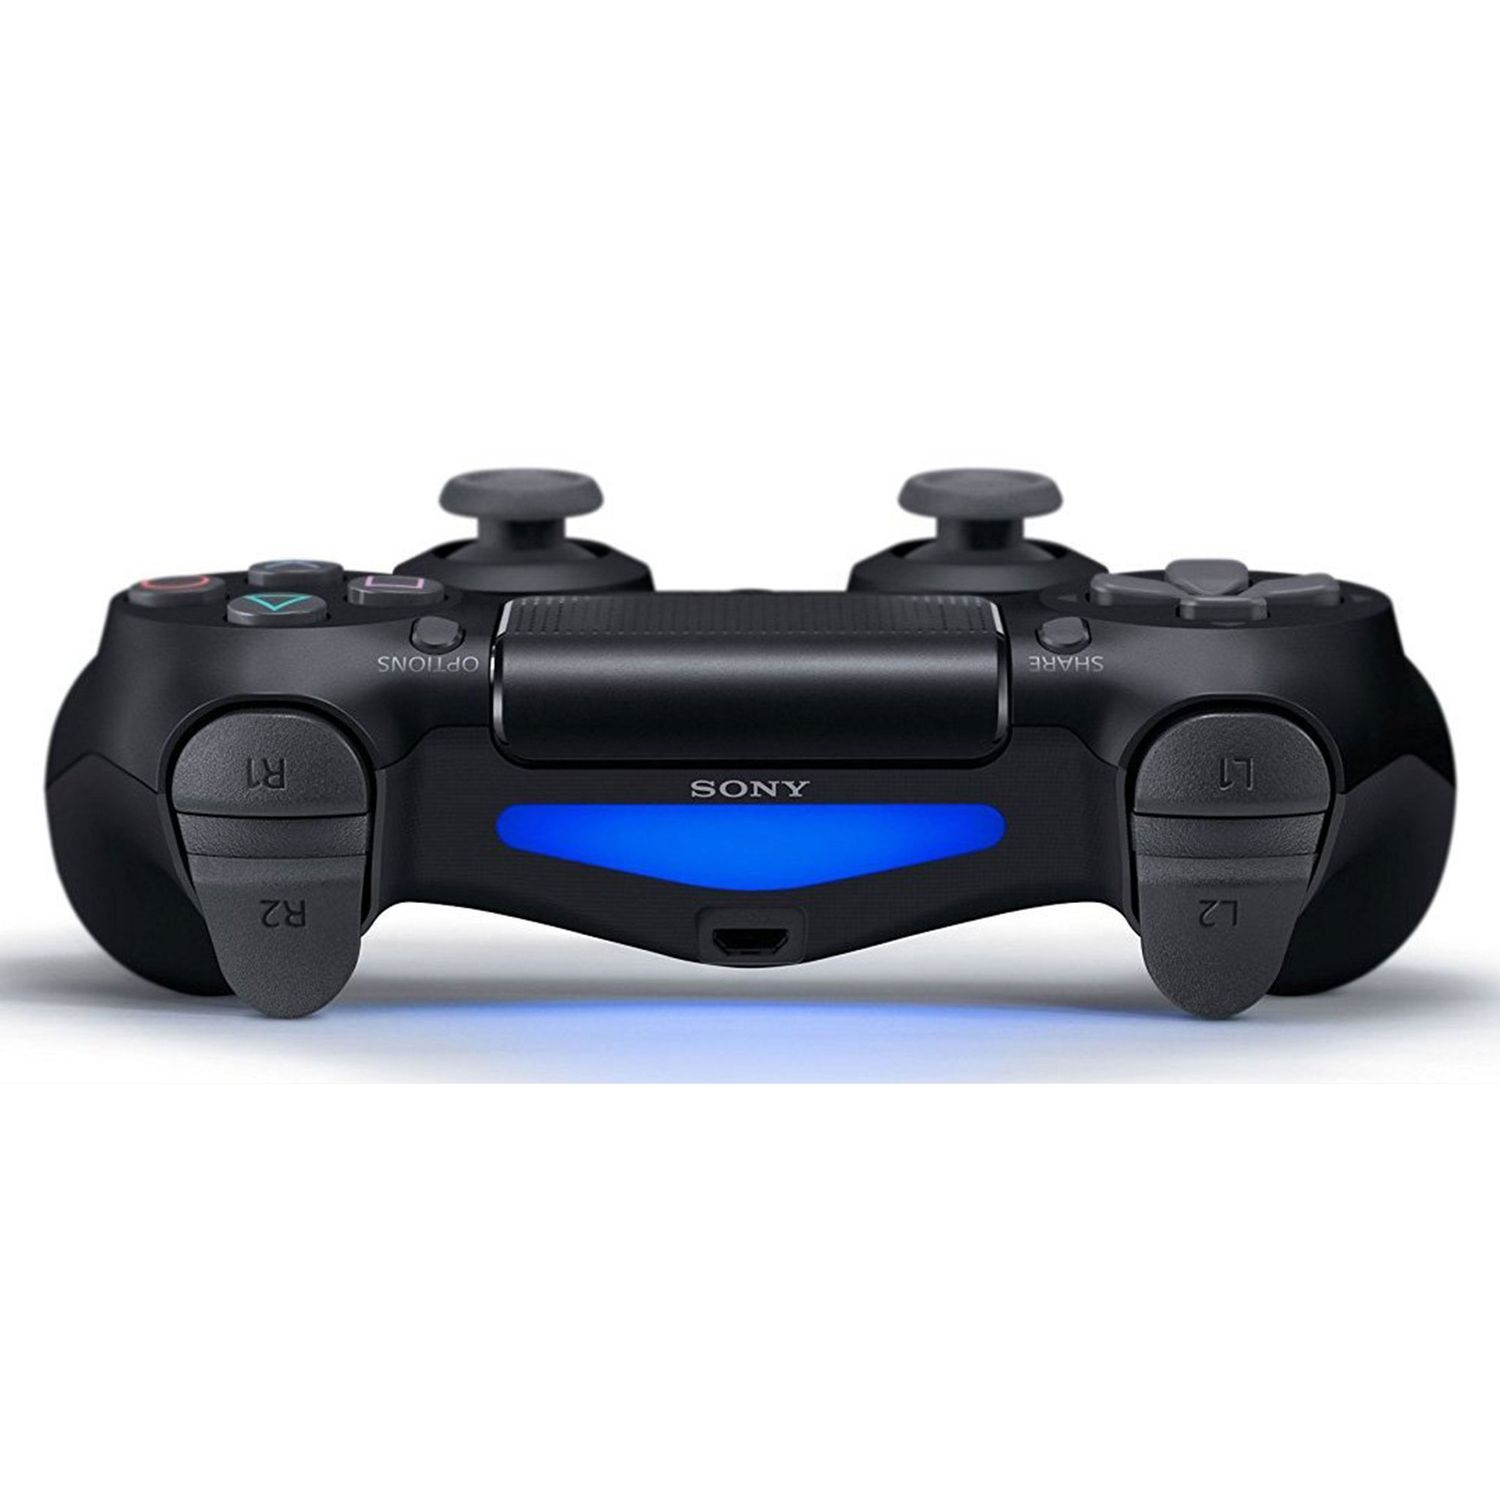 Sony DualShock 4 Wireless Controller for PS4 Sony PlayStation 4 / 4 Pro / 4 Slim - Jet Black - image 1 de 5